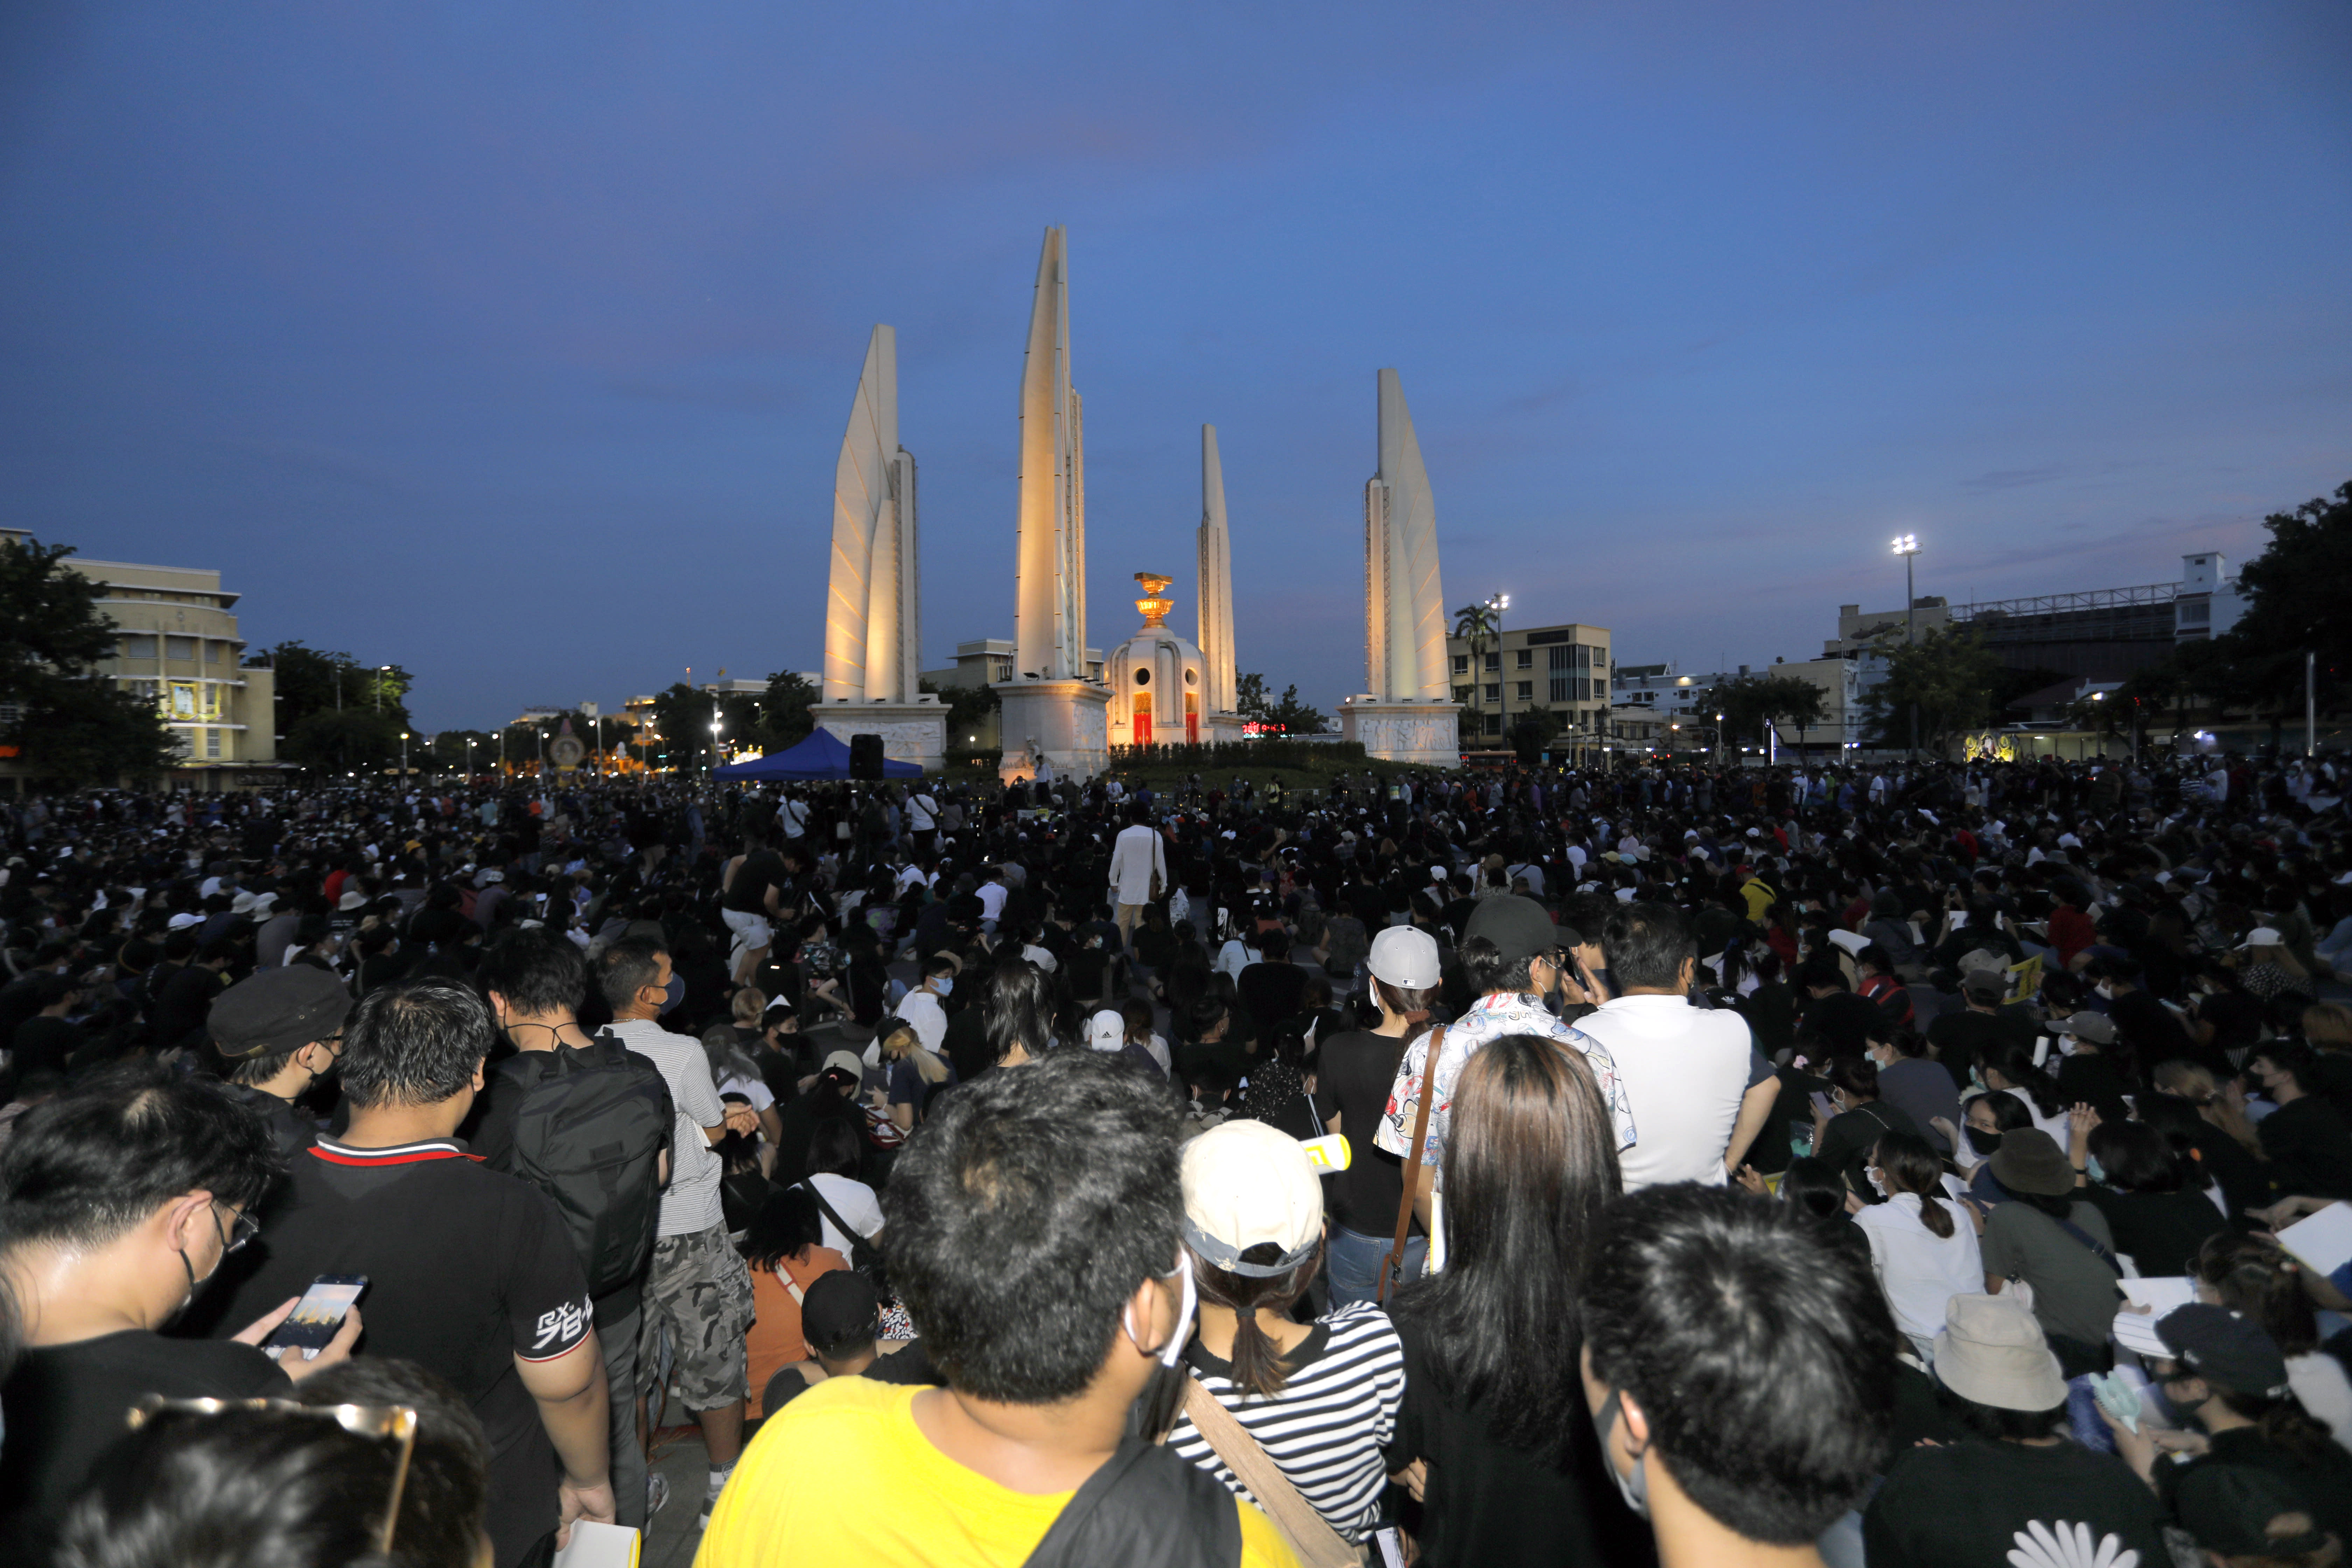 Thai anti-government protesters gather front of the Democracy Monument in Bangkok, Thailand, Saturday, July 18, 2020. Several thousand anti-government protesters have rallied in the Thai capital Bangkok to call for a new constitution, new elections and an end to repressive laws. (AP Photo/Nathathida Adireksarn)